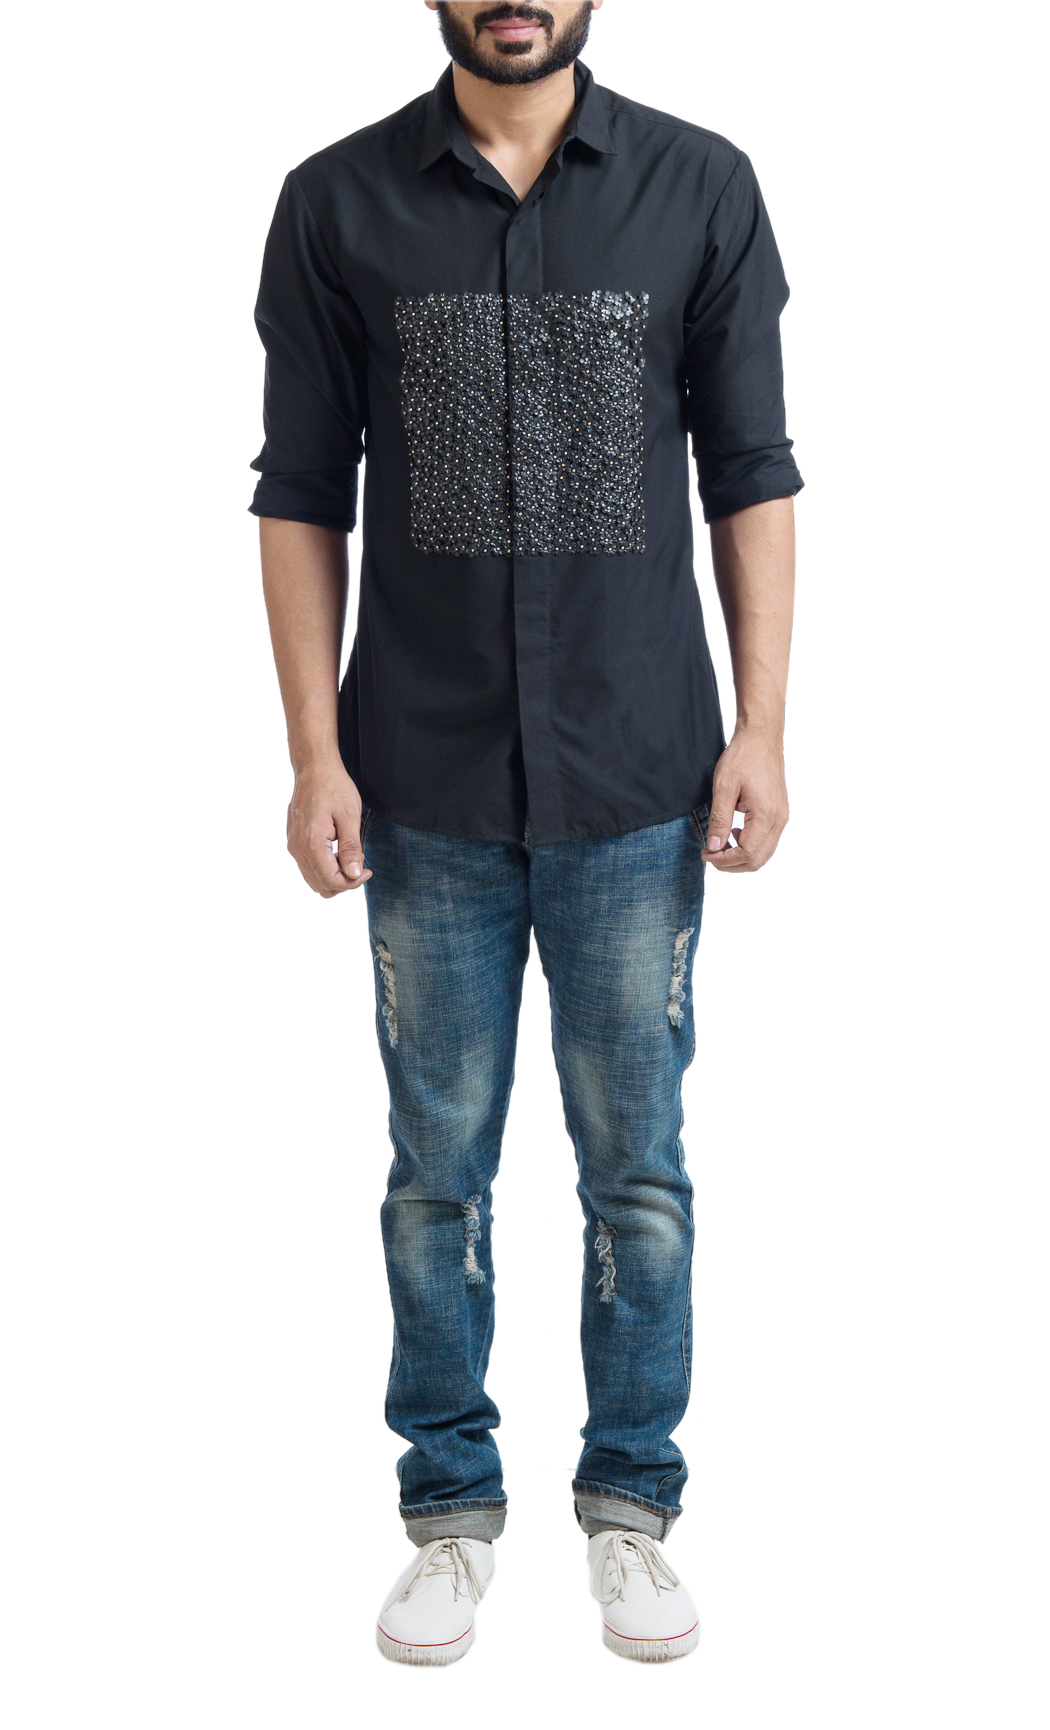 Black Cotton Shirt with Floral Metal Applique